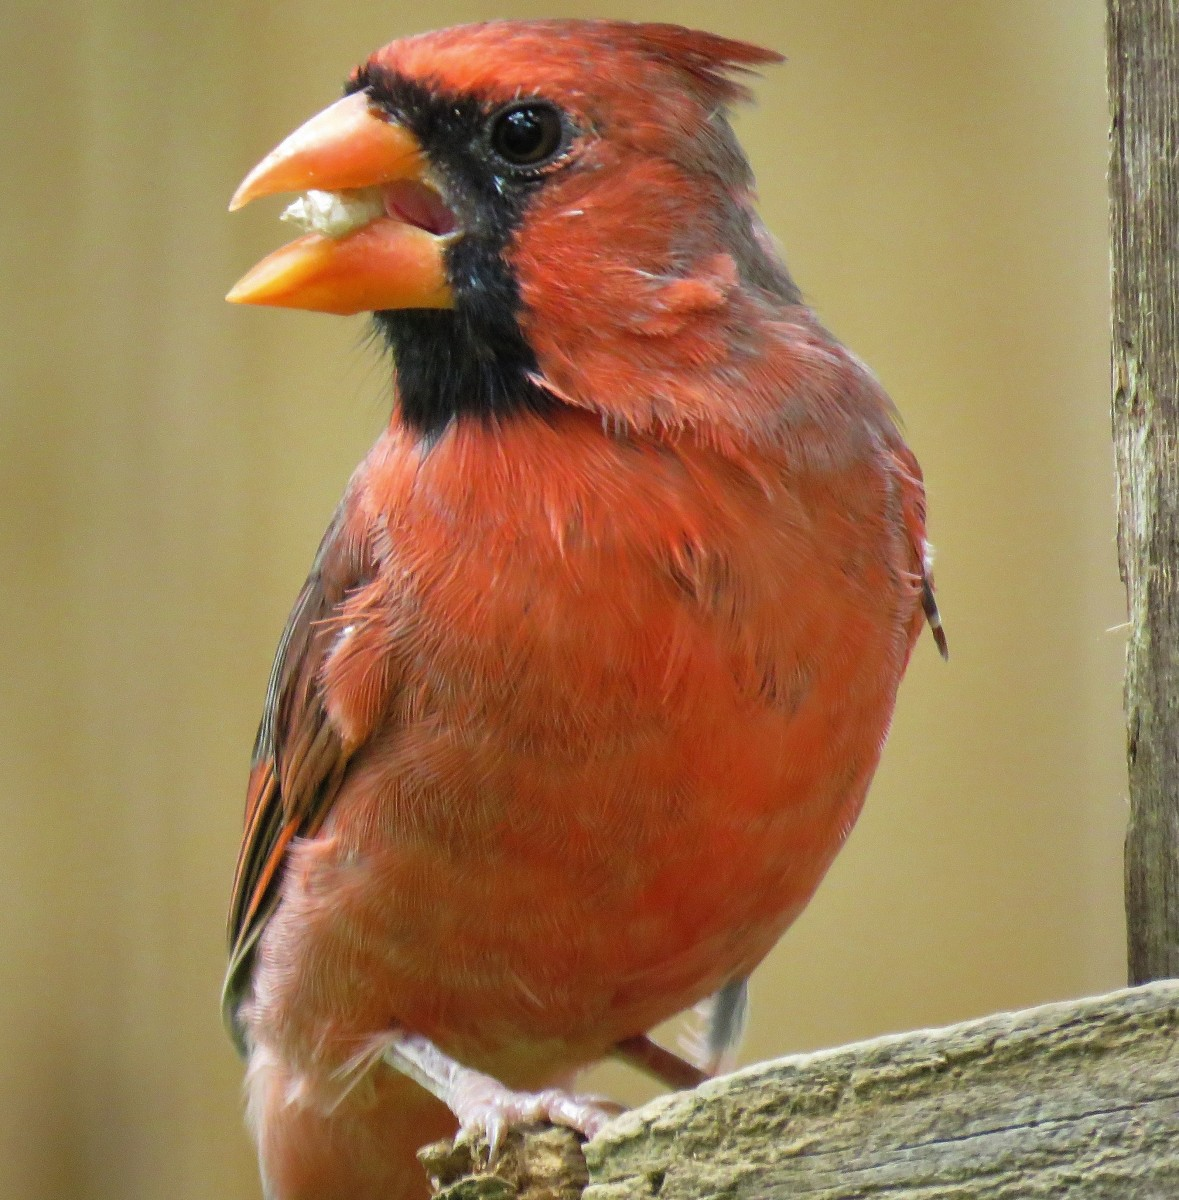 Cardinal takes one seed at a time.